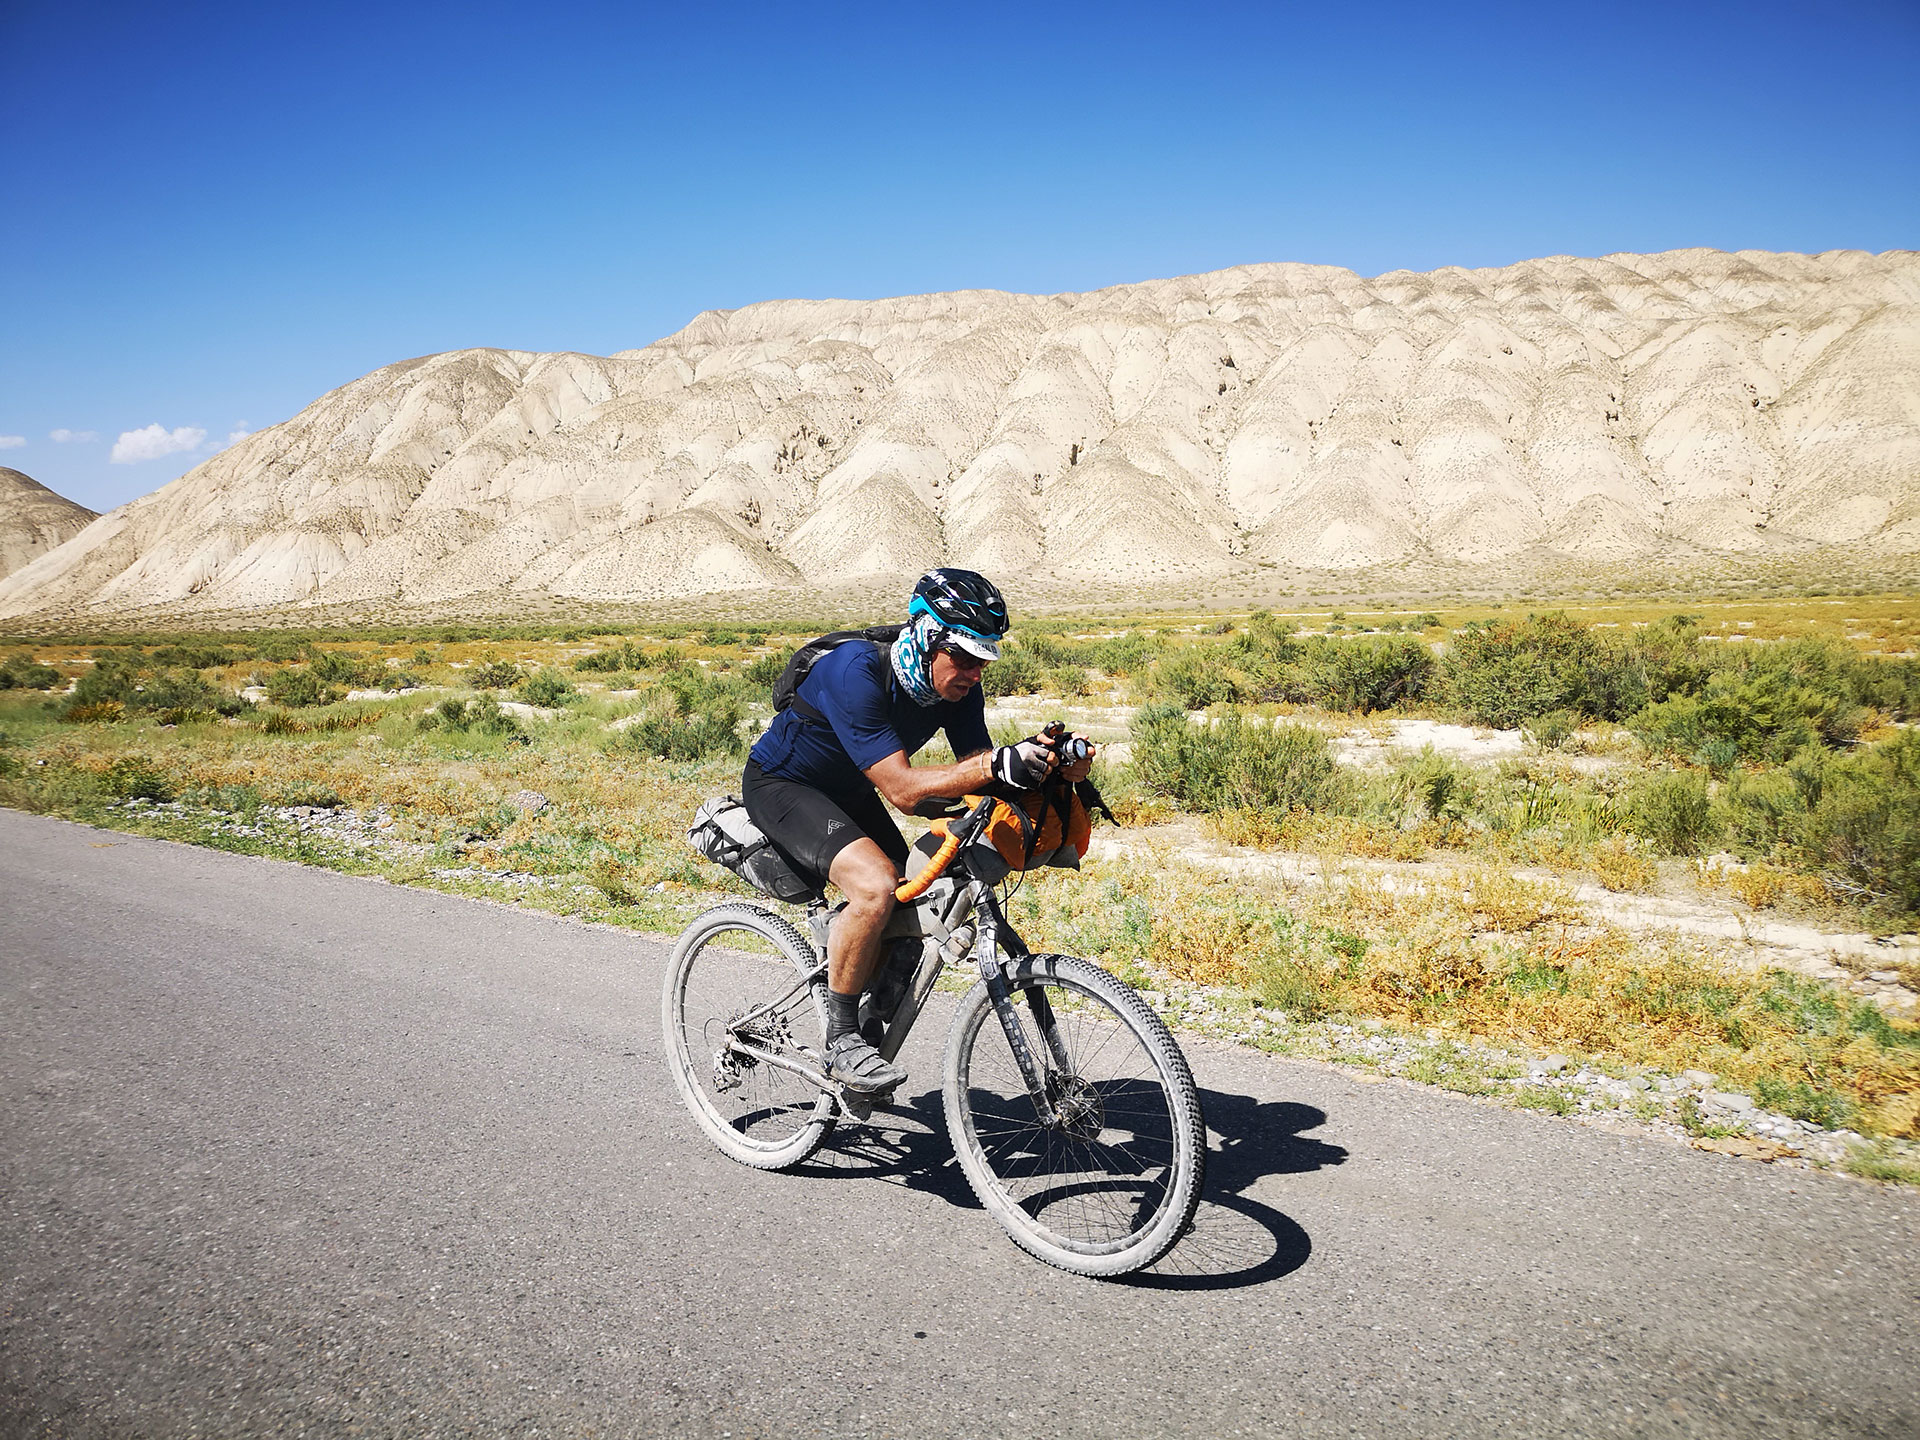 Pierre from Chiru bikes, riding the Silk Road Adventure Race